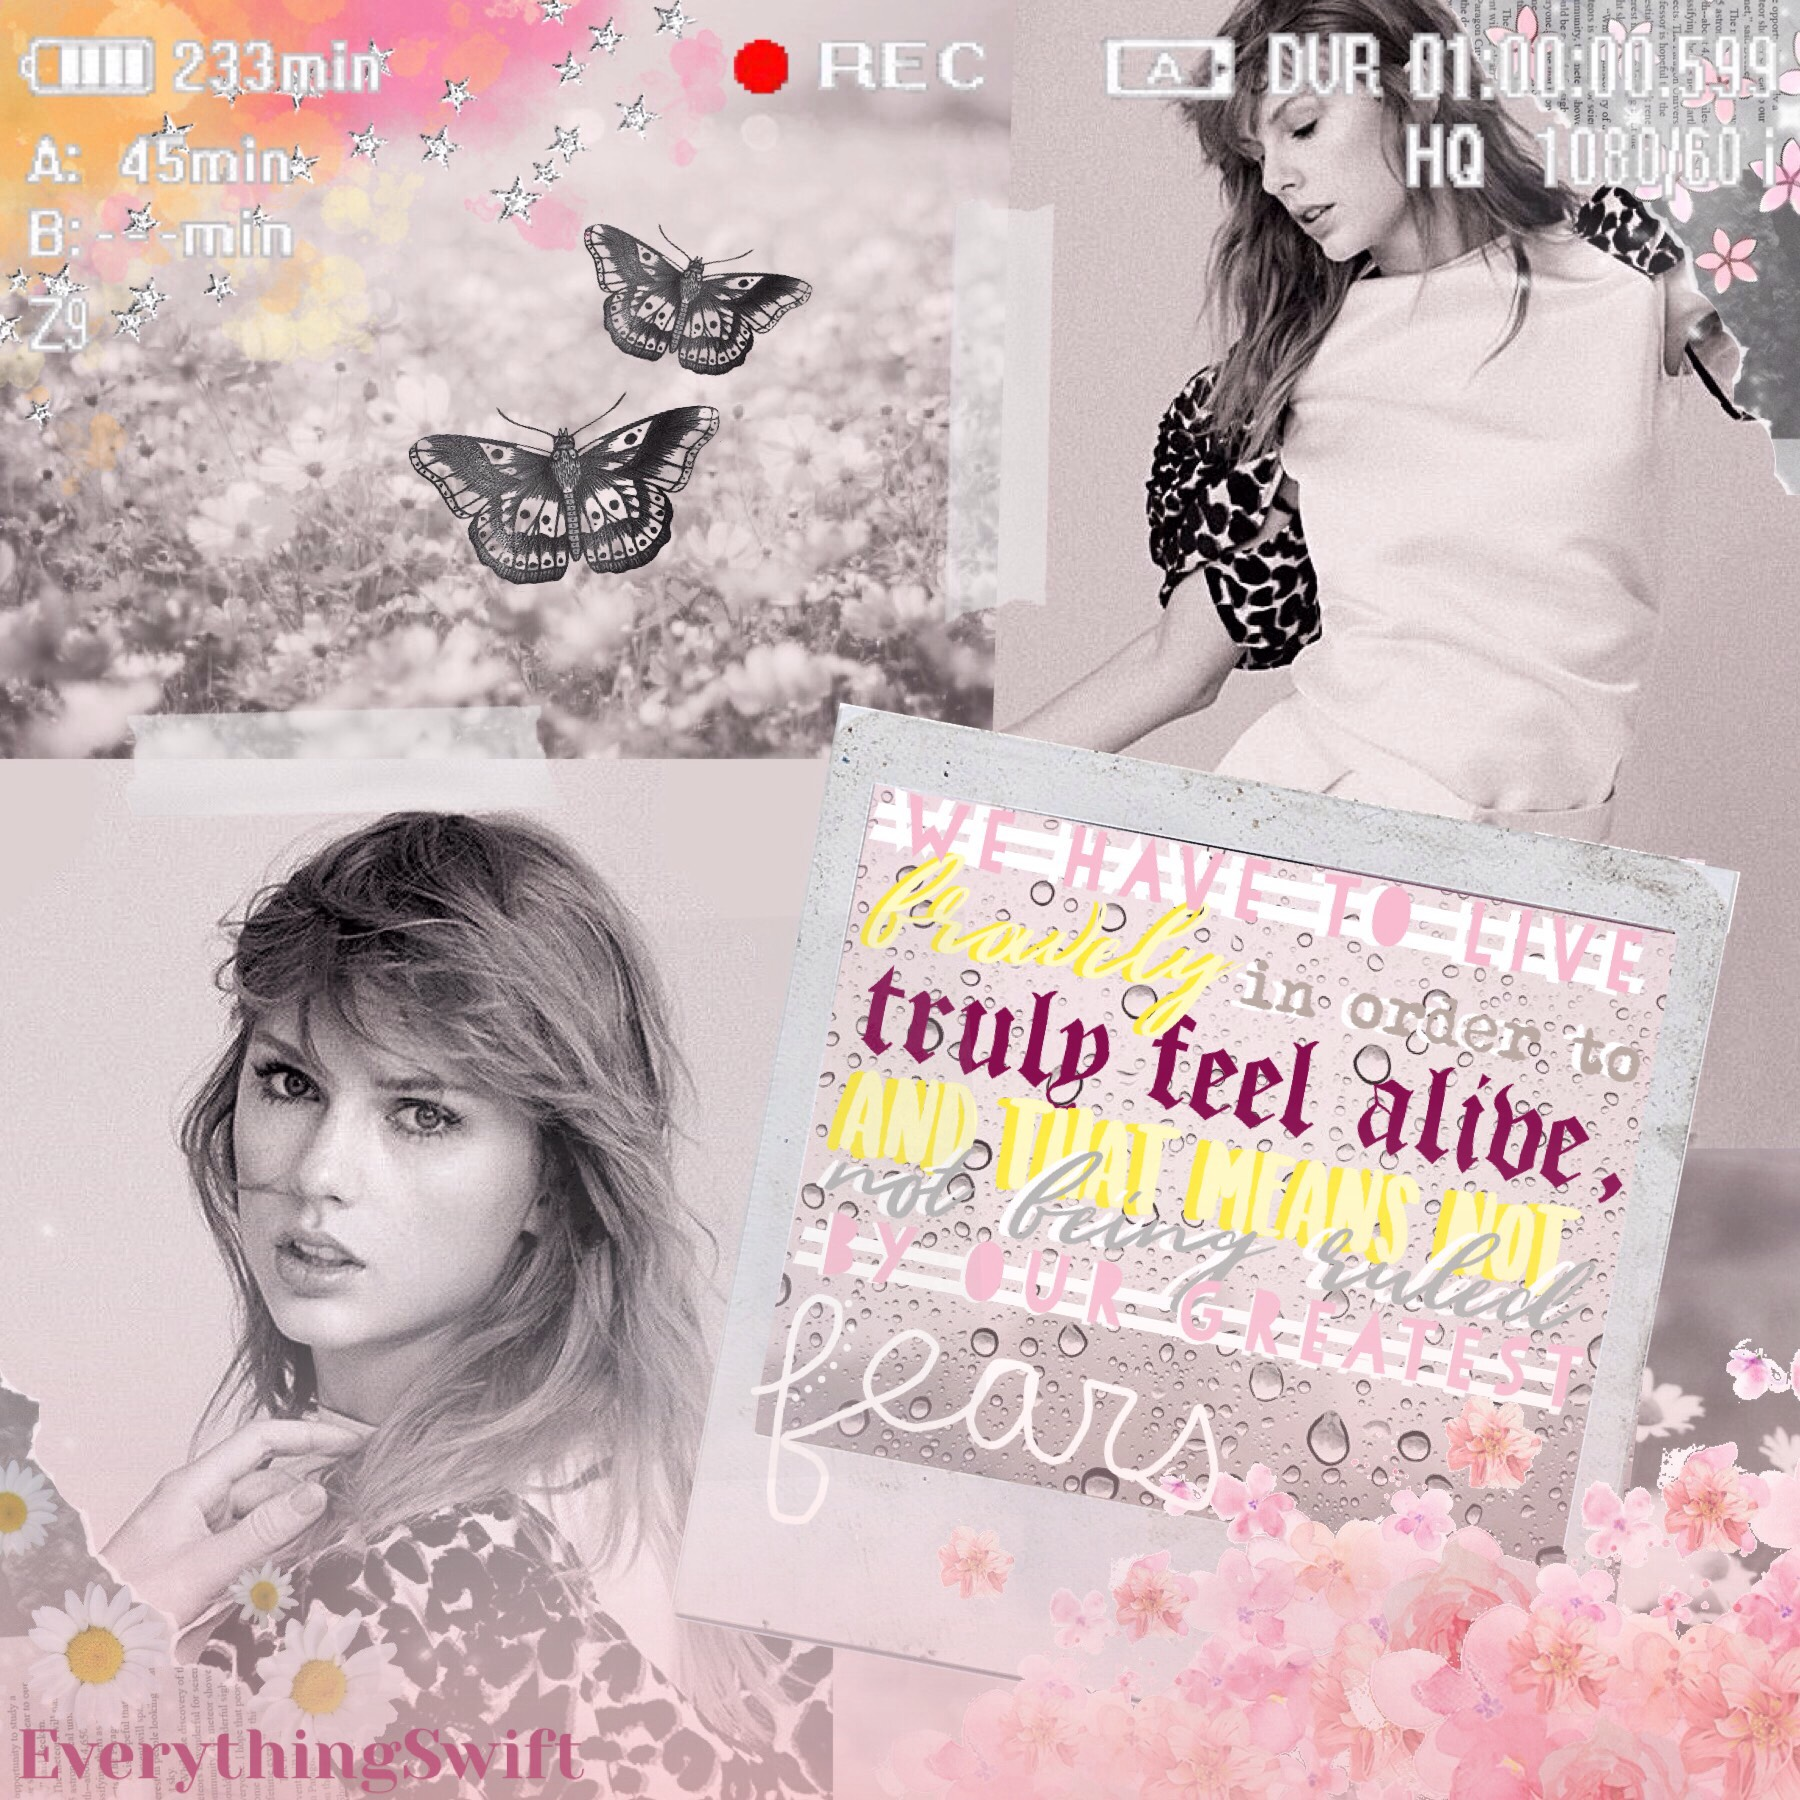 ❀ t a p ❀ I'm so excited for ts7! I can't wait any longer! qotd: what did you do today? (sorry I don't know what to ask) aotd: I went to school and I have hip-hop class later